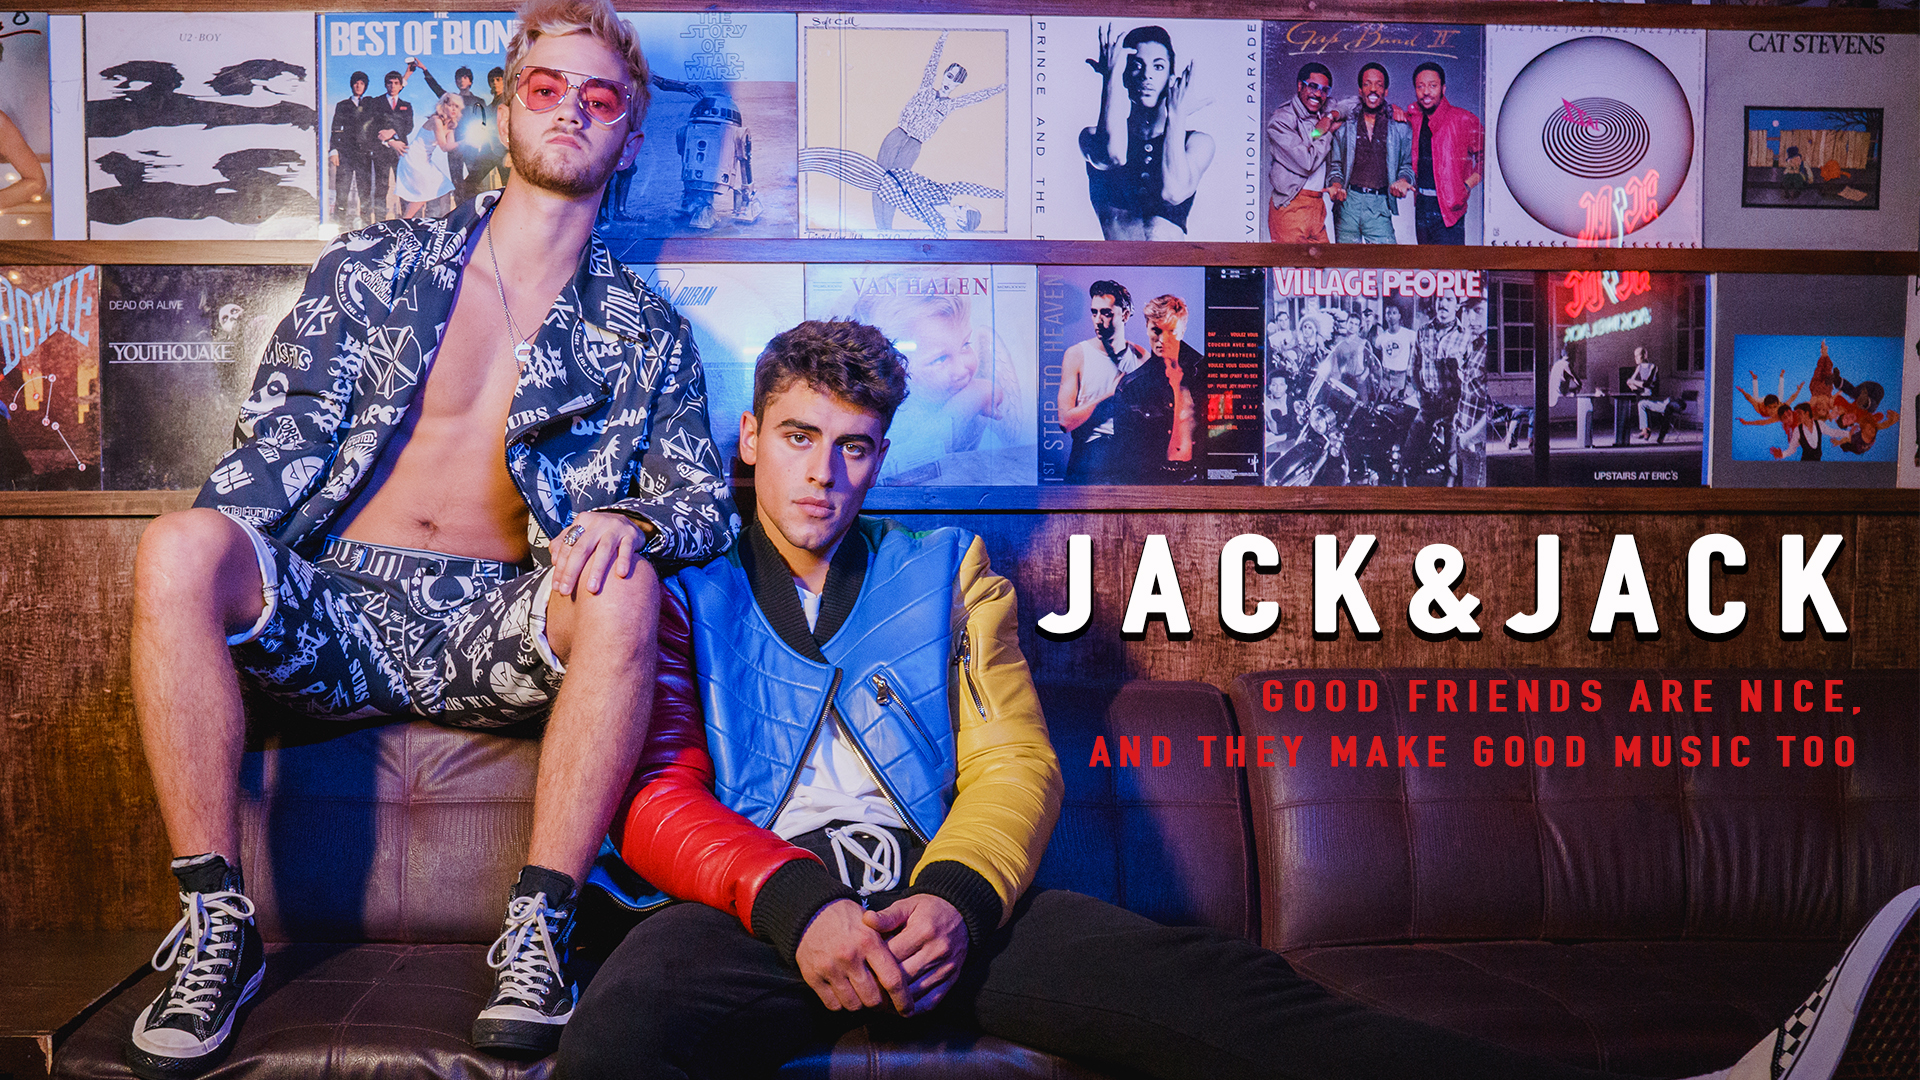 JACK&JACK: GOOD FRIENDS ARE NICE, AND THEY MAKE GOOD MUSIC TOO